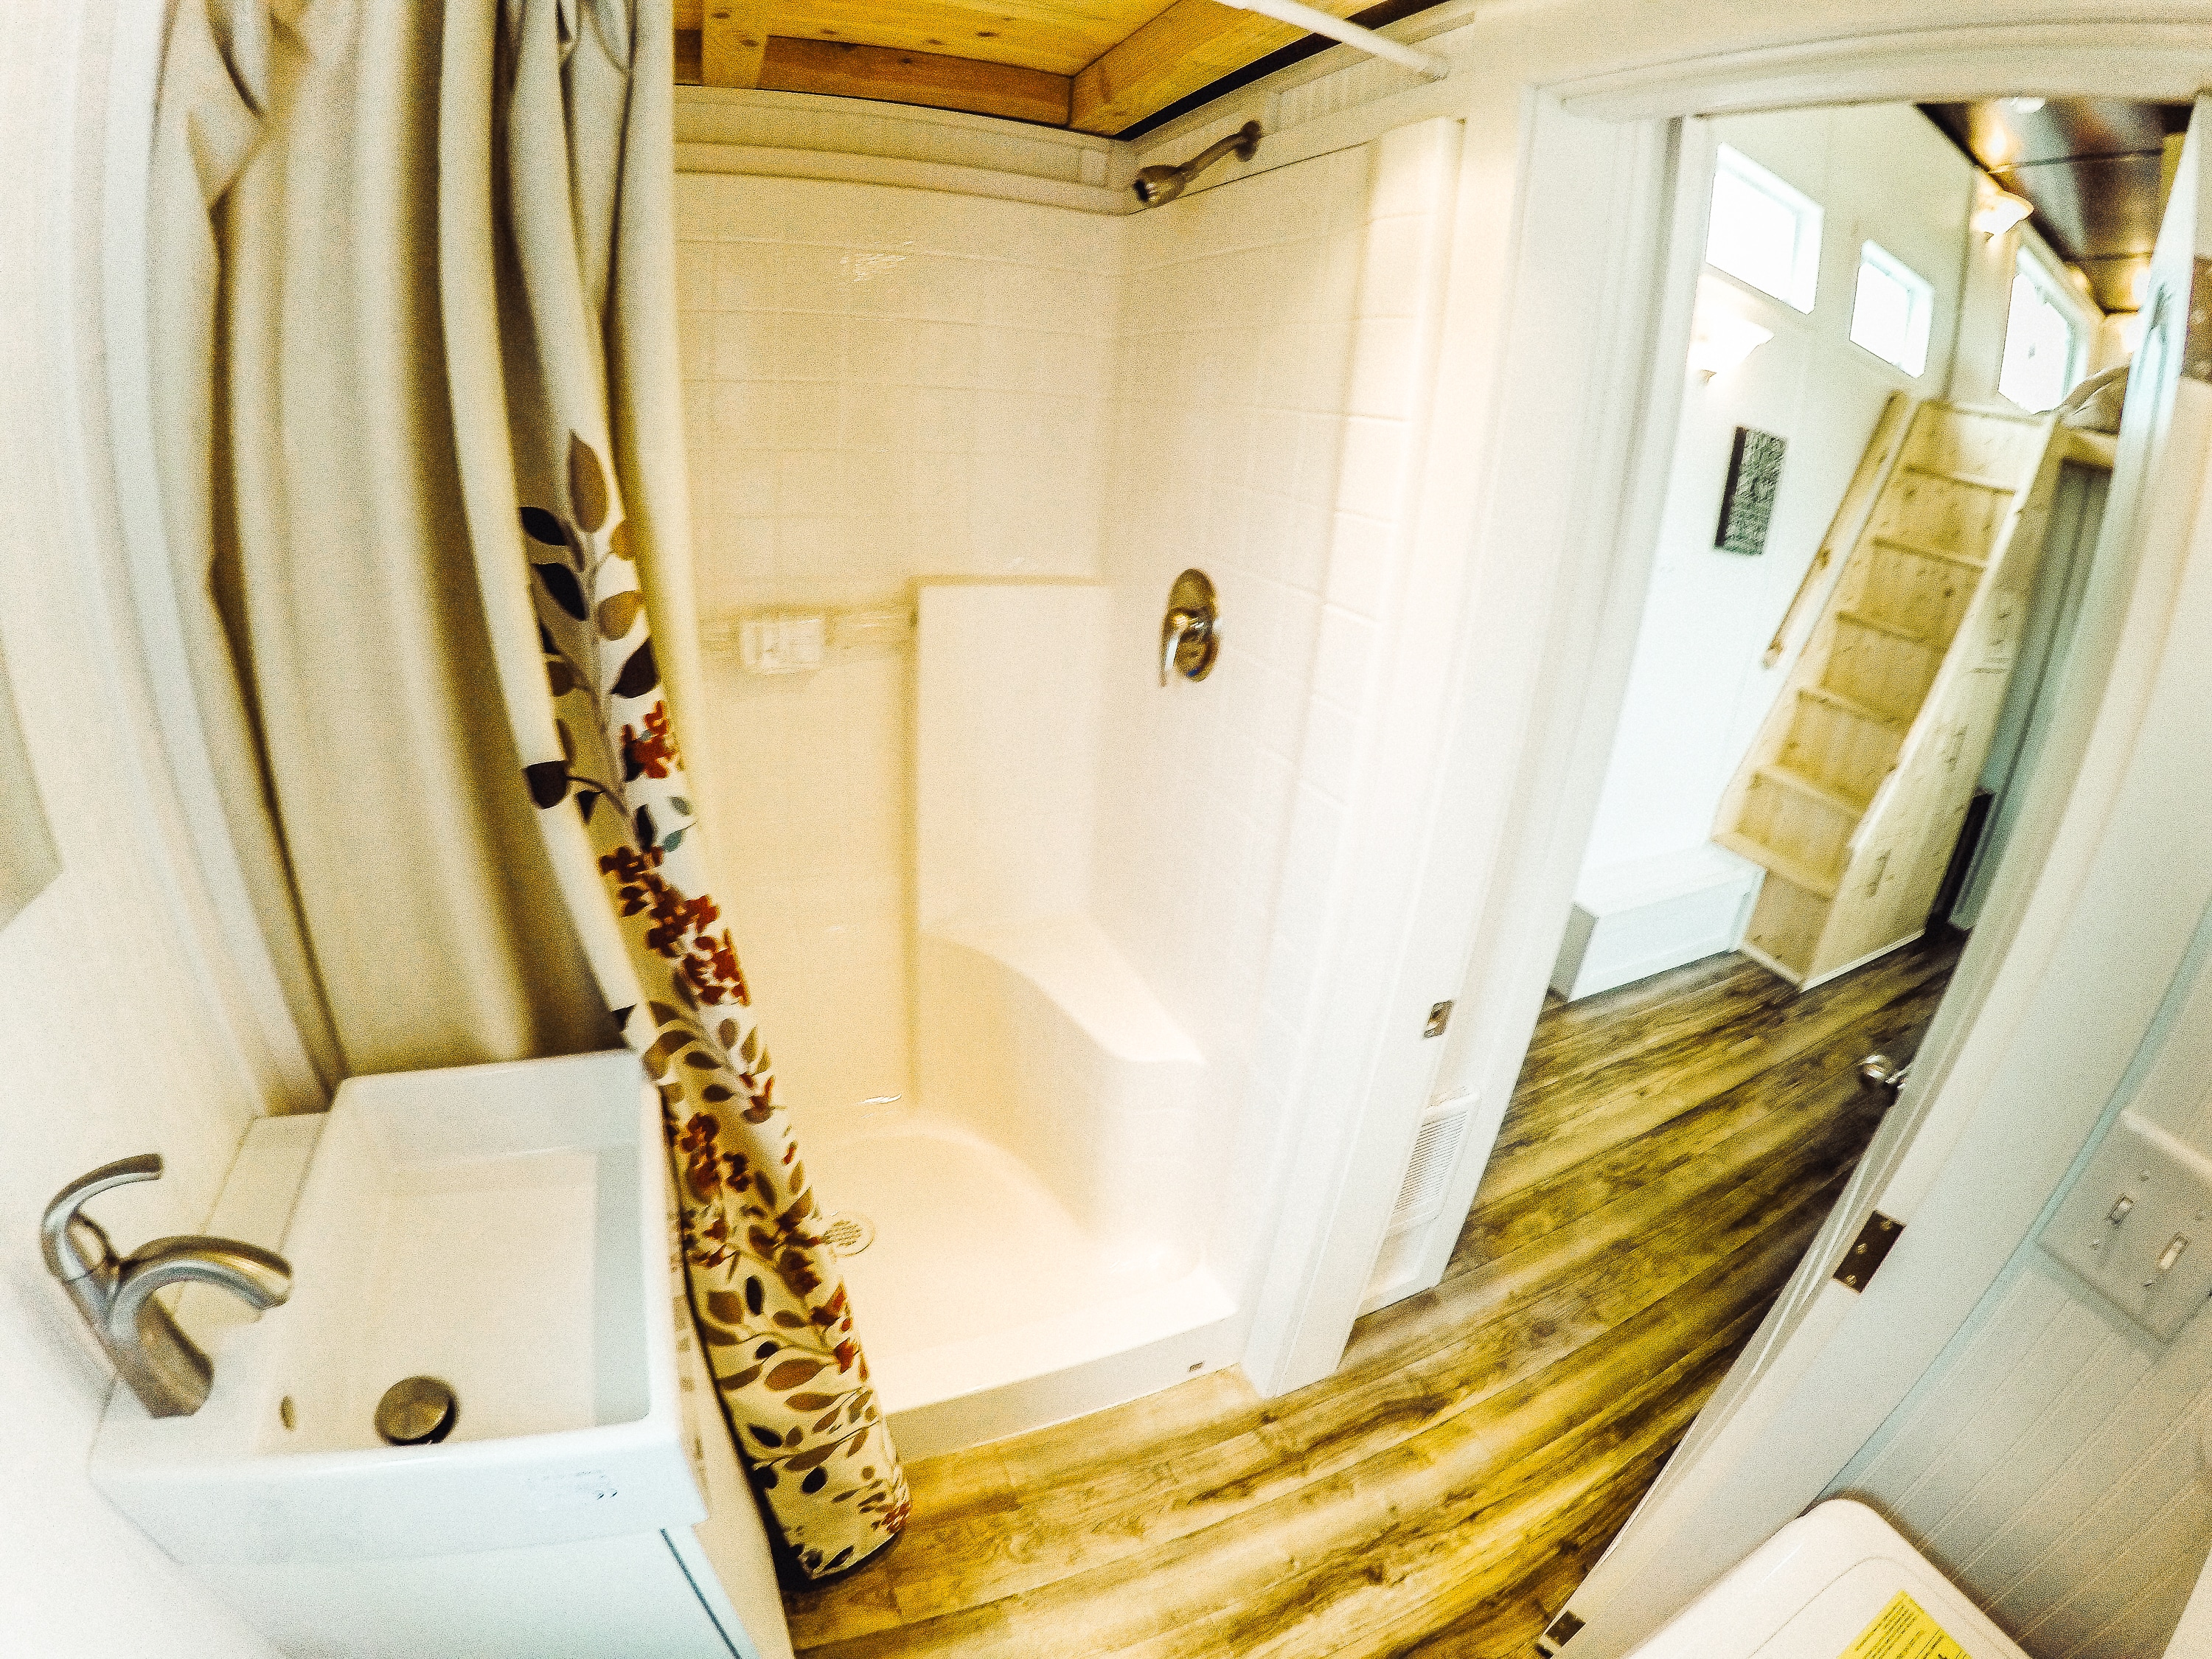 Bathroom view of the custom built #CastlePeak